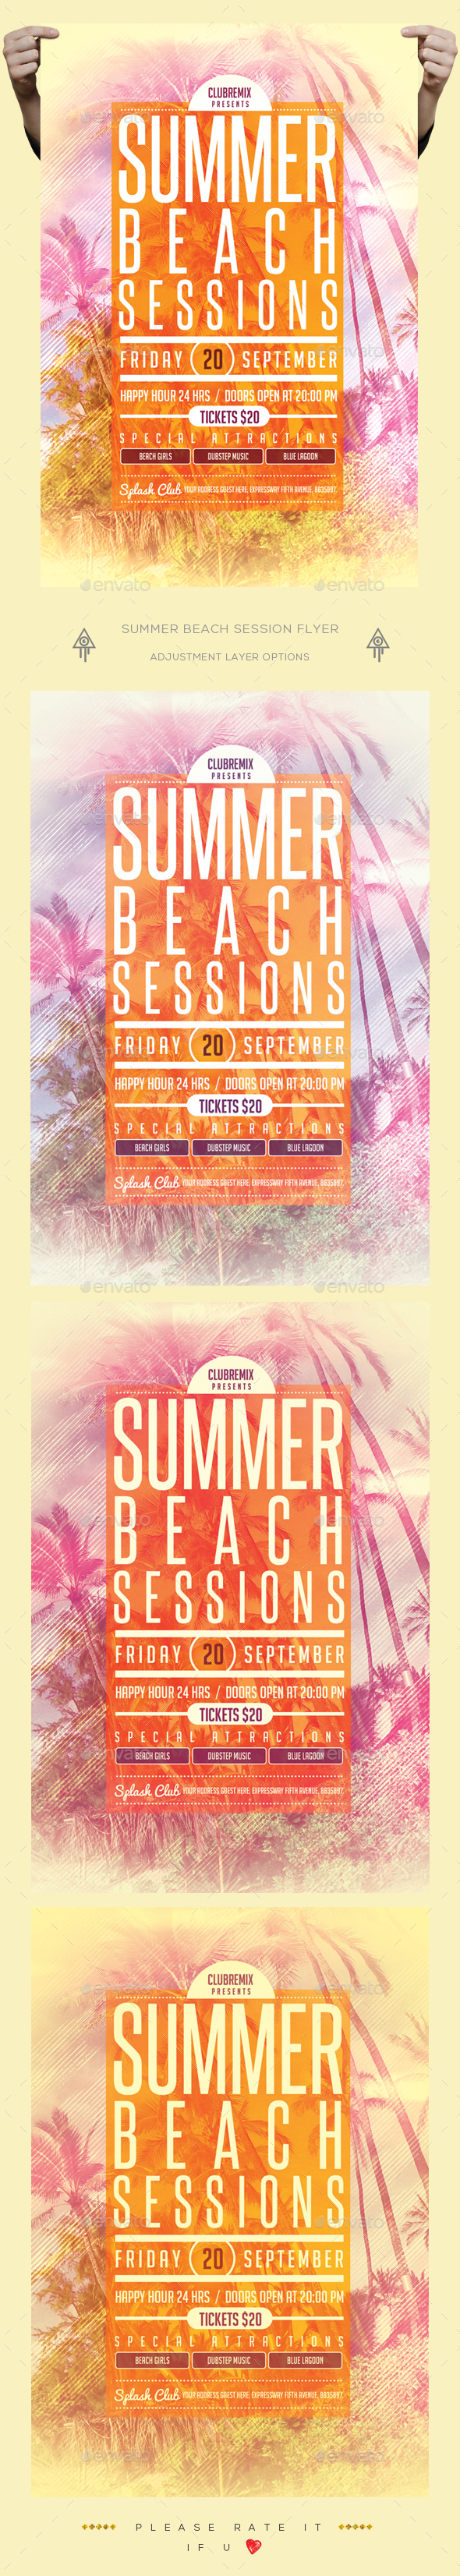 Summer Beach Session Flyer - Clubs & Parties Events